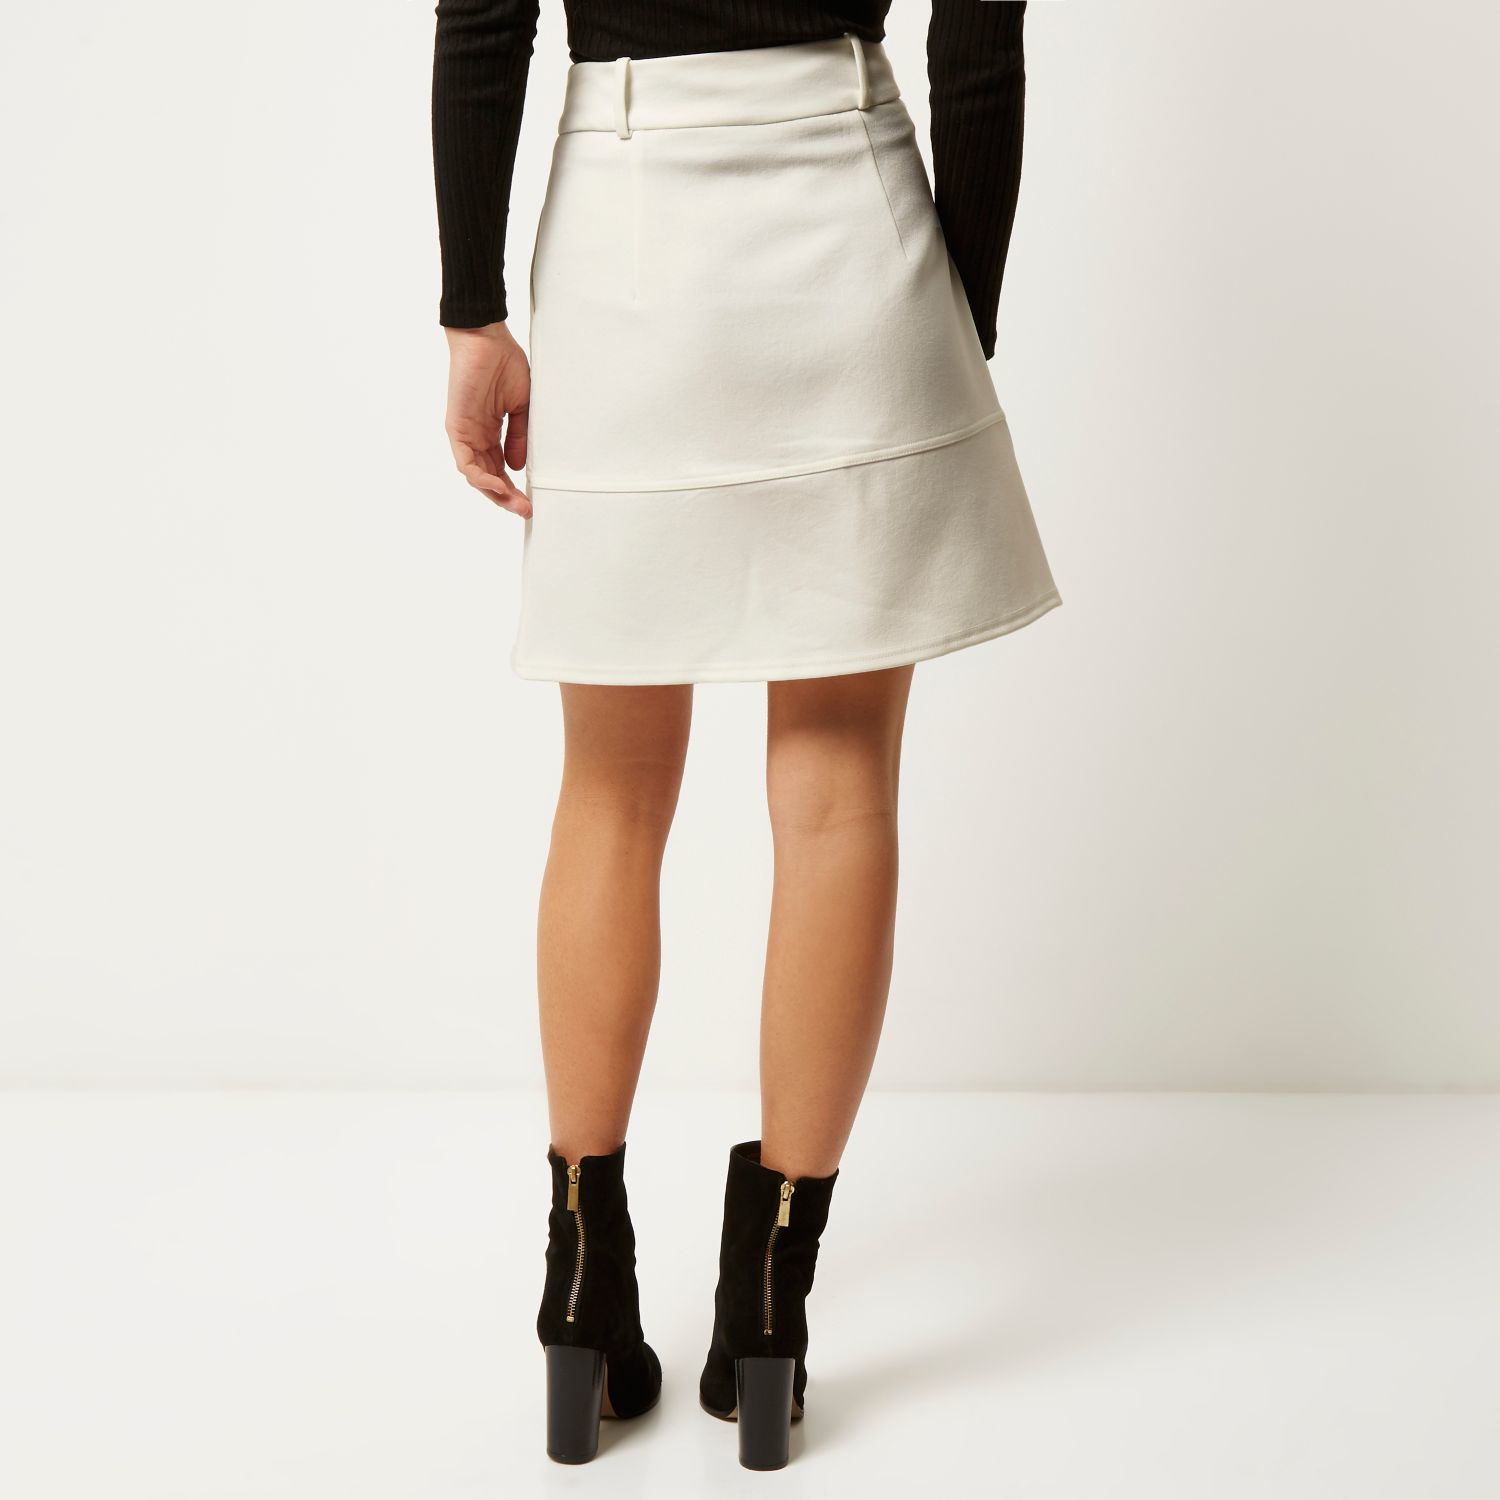 River island Cream Zip-up A-line Skirt in Natural | Lyst